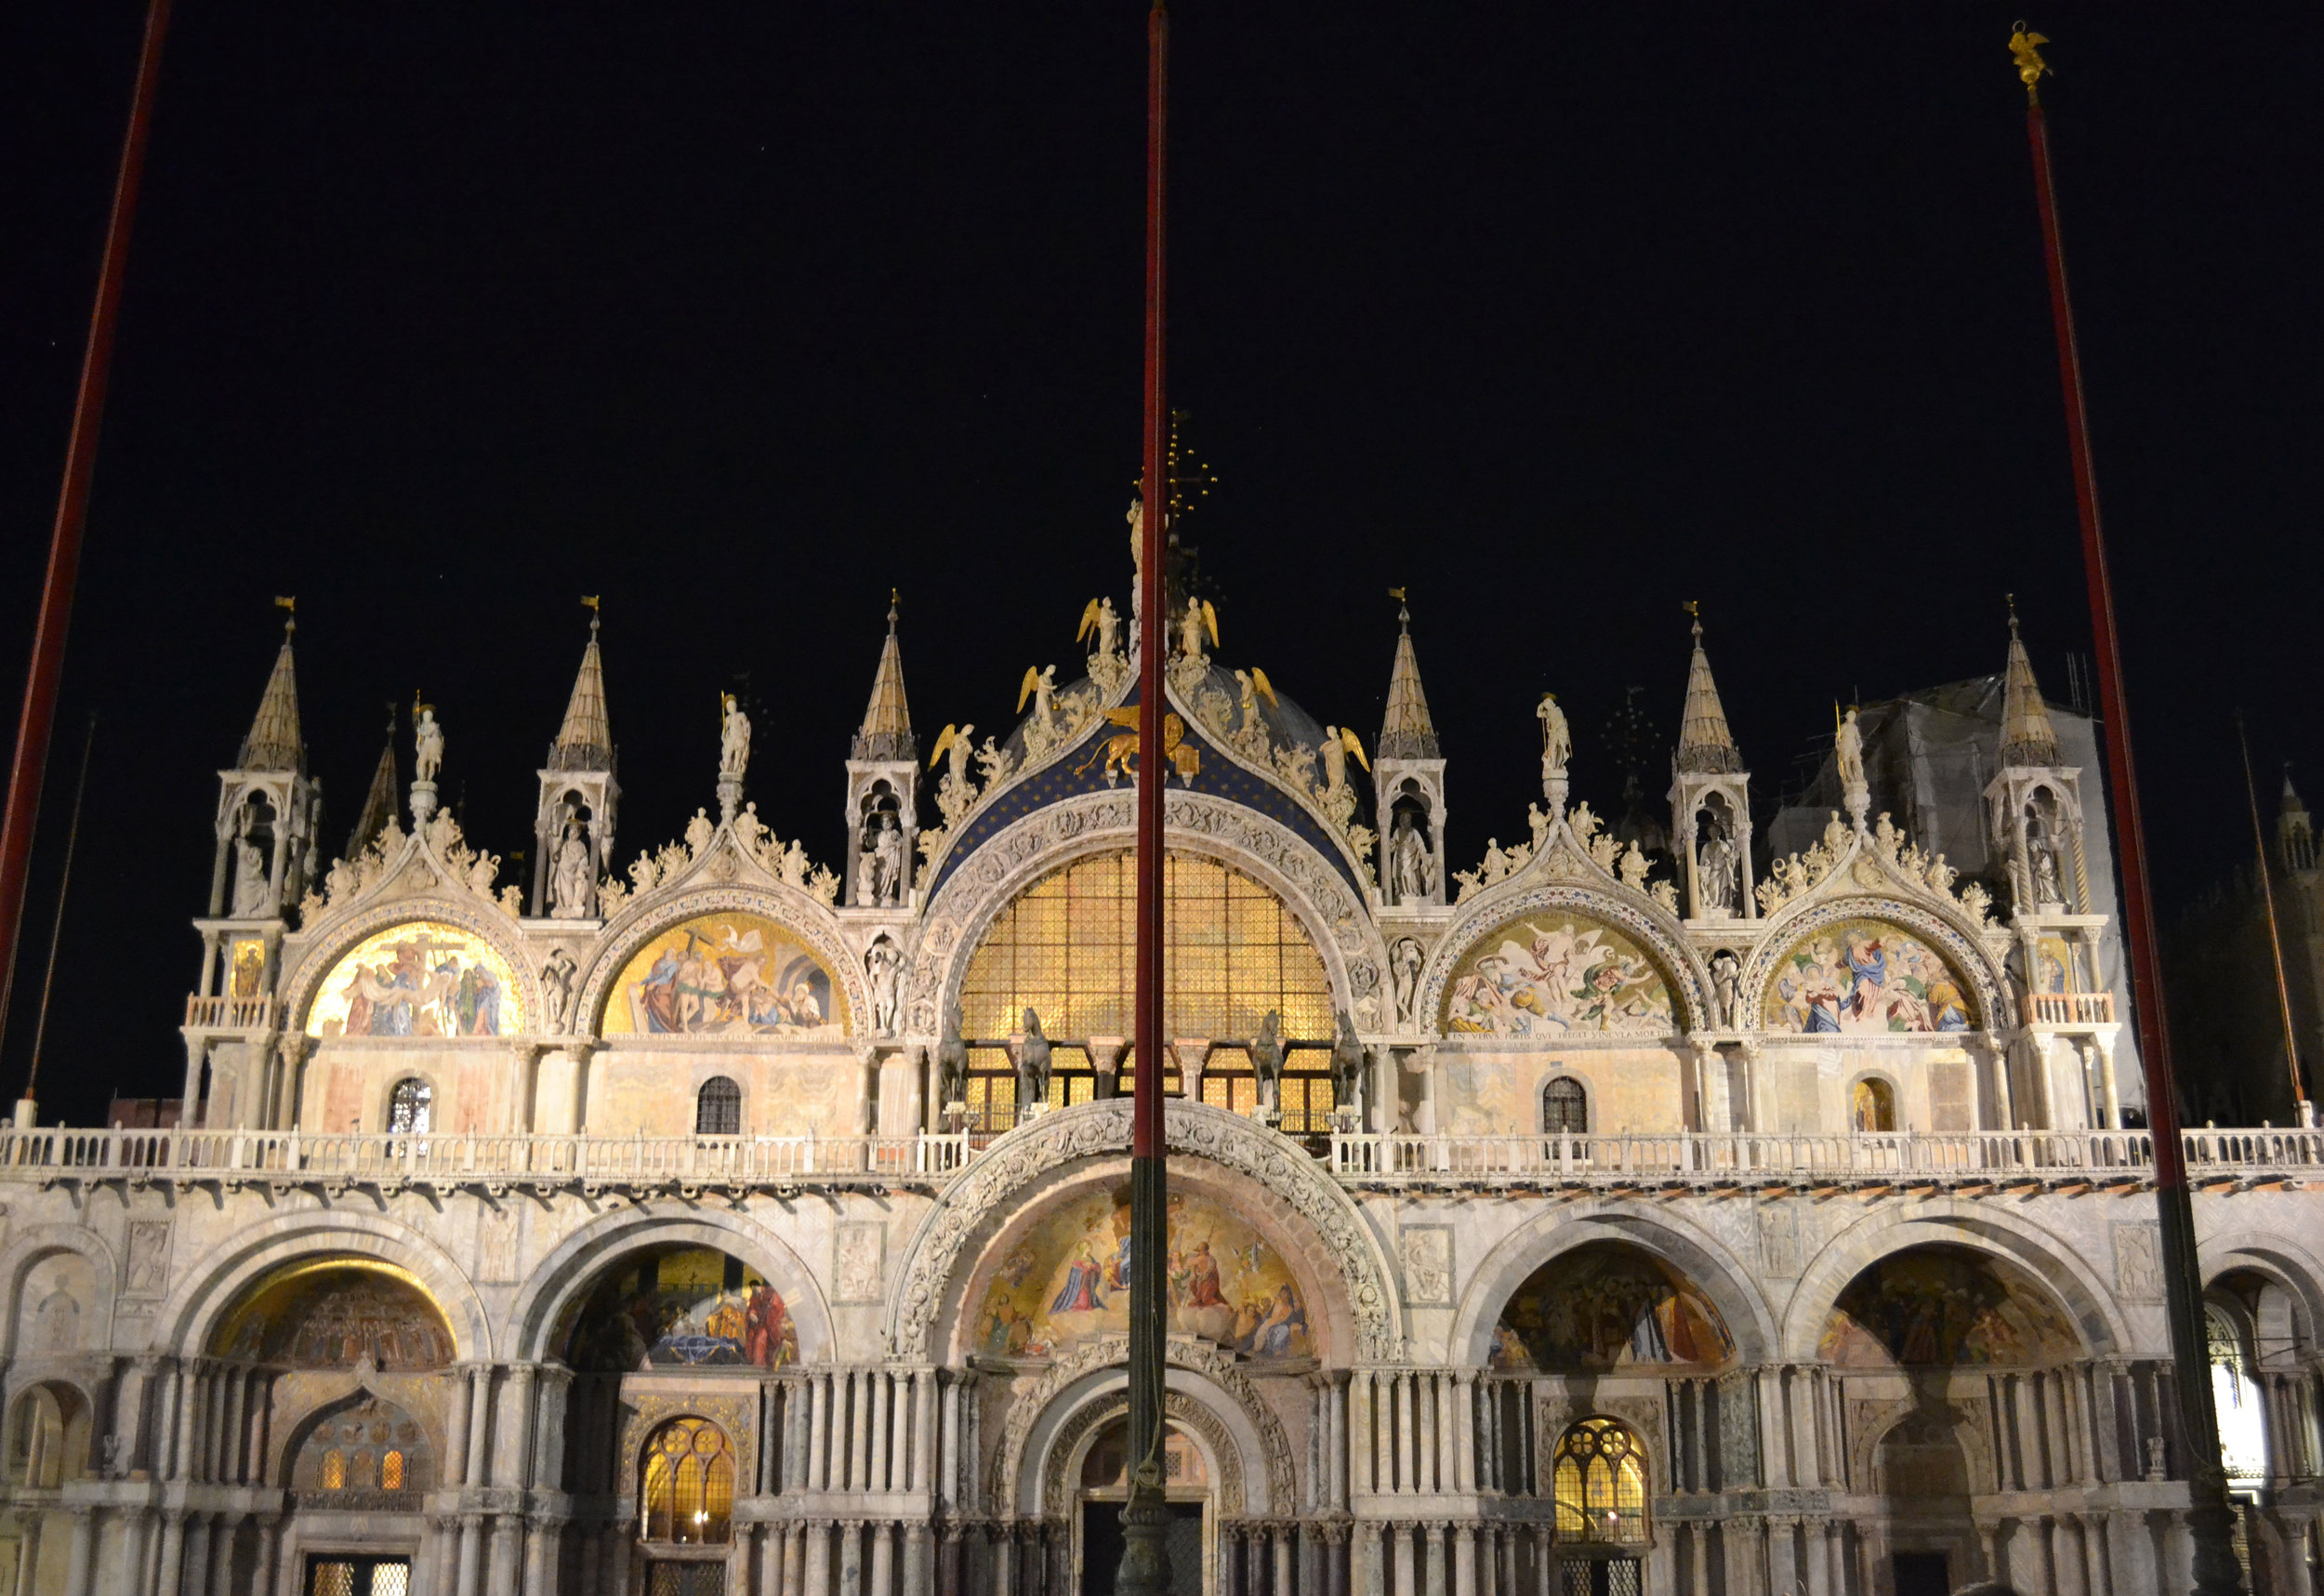 At night, the crowds in St. Mark's Square cleared out and we got to enjoy this beauty all lit up.